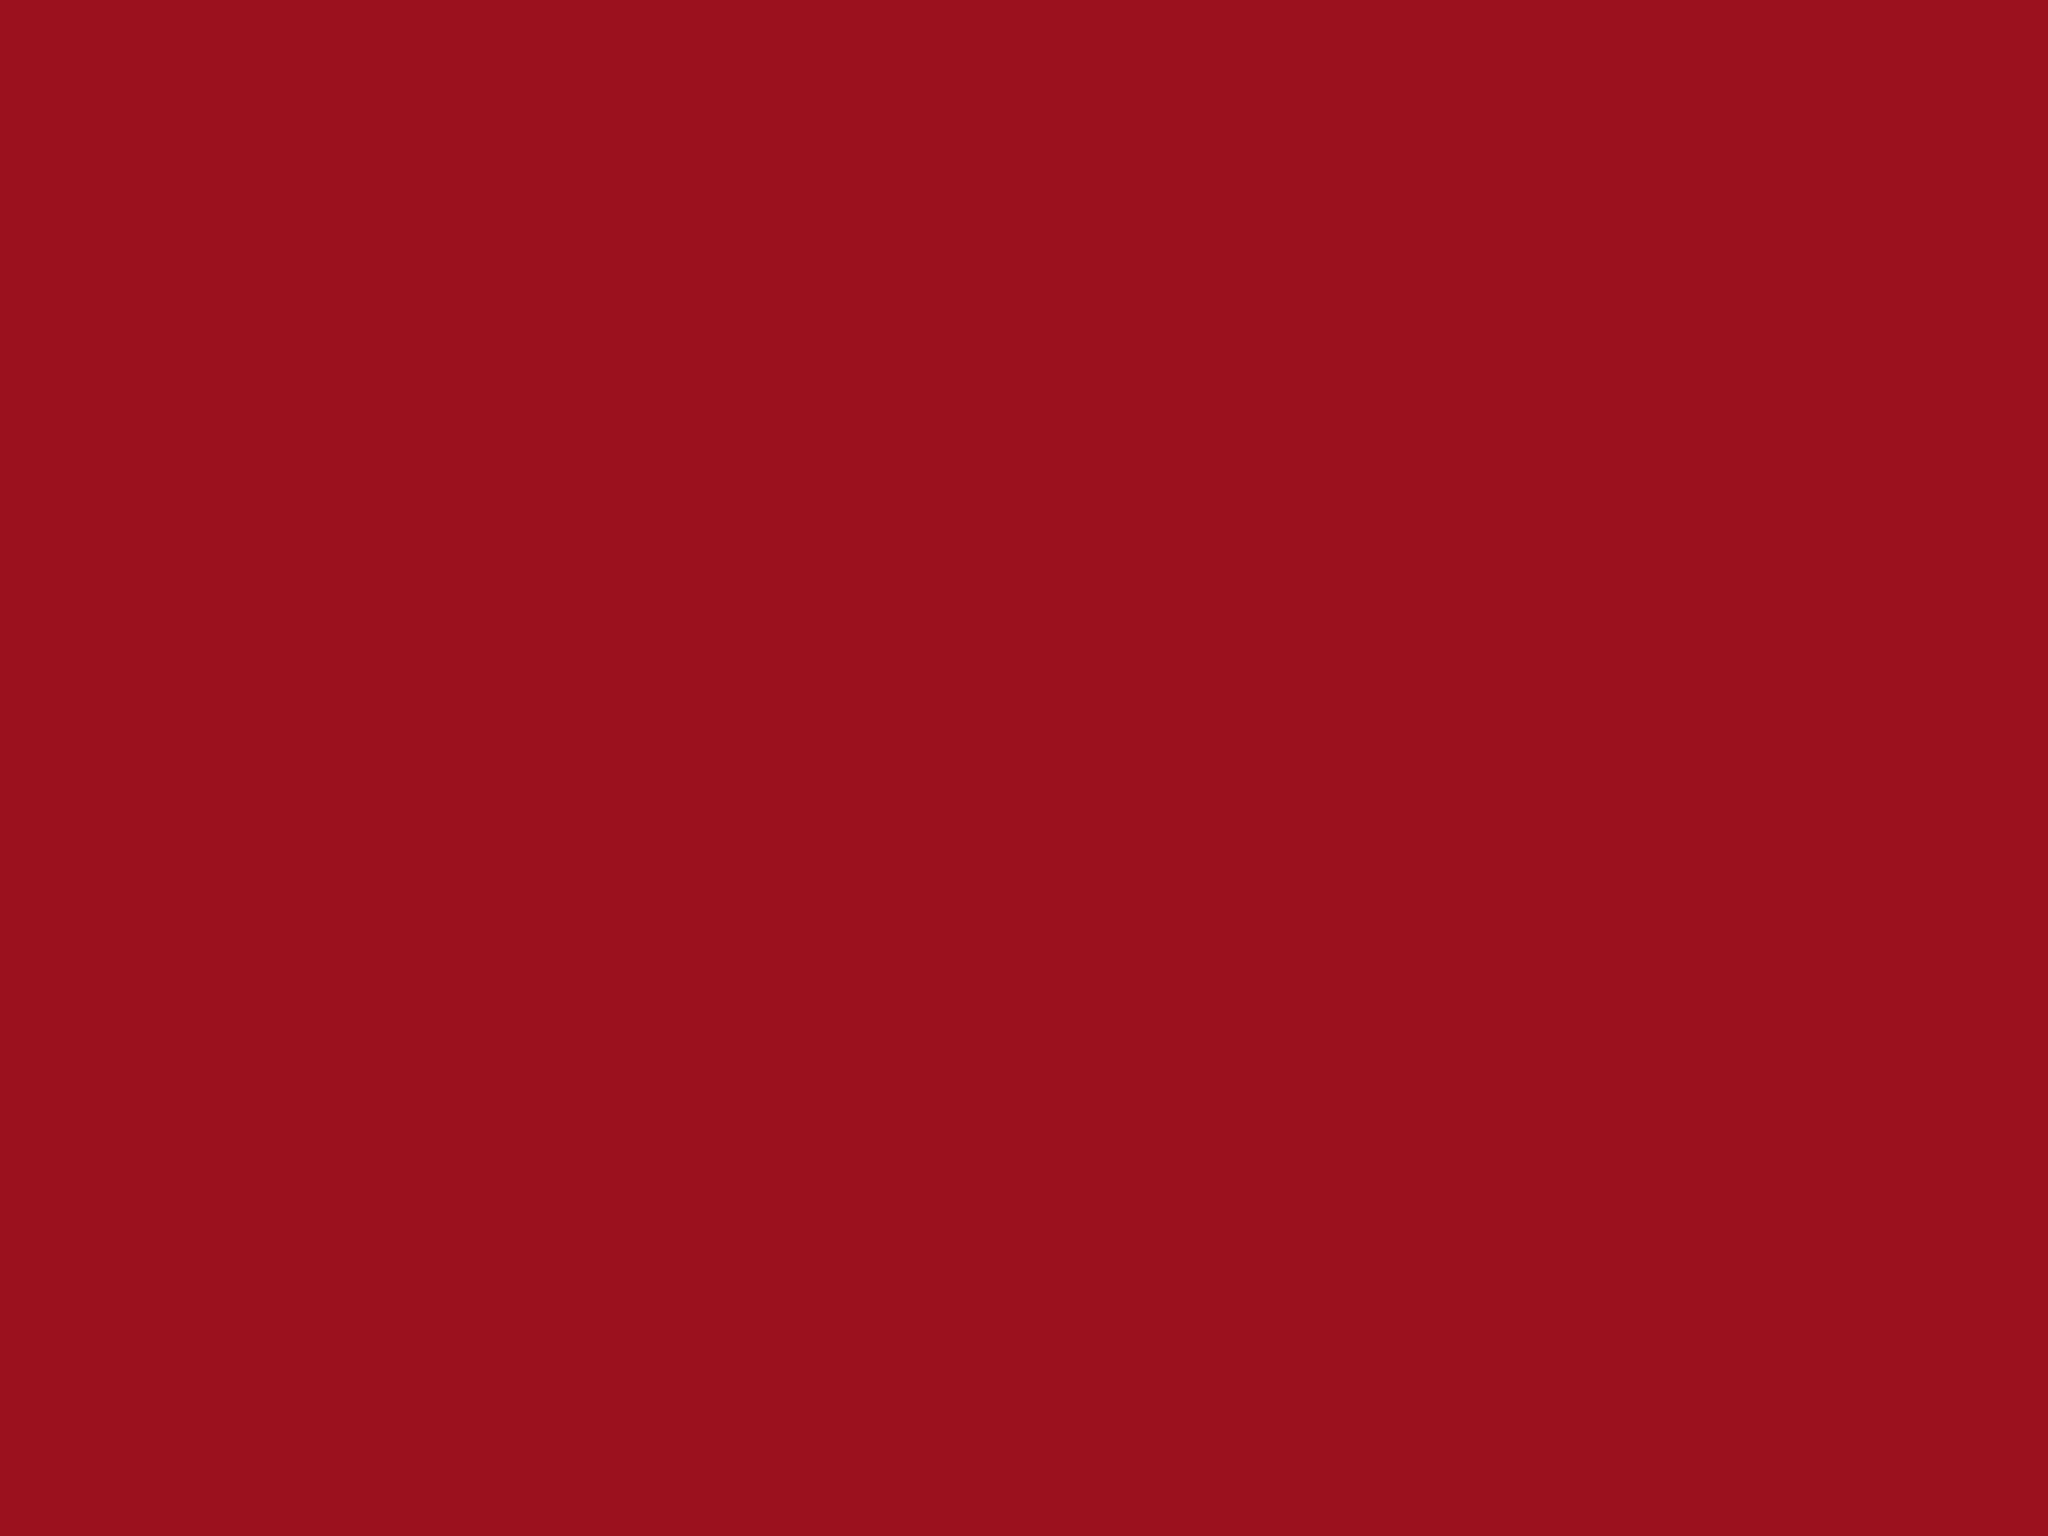 2048x1536 Ruby Red Solid Color Background